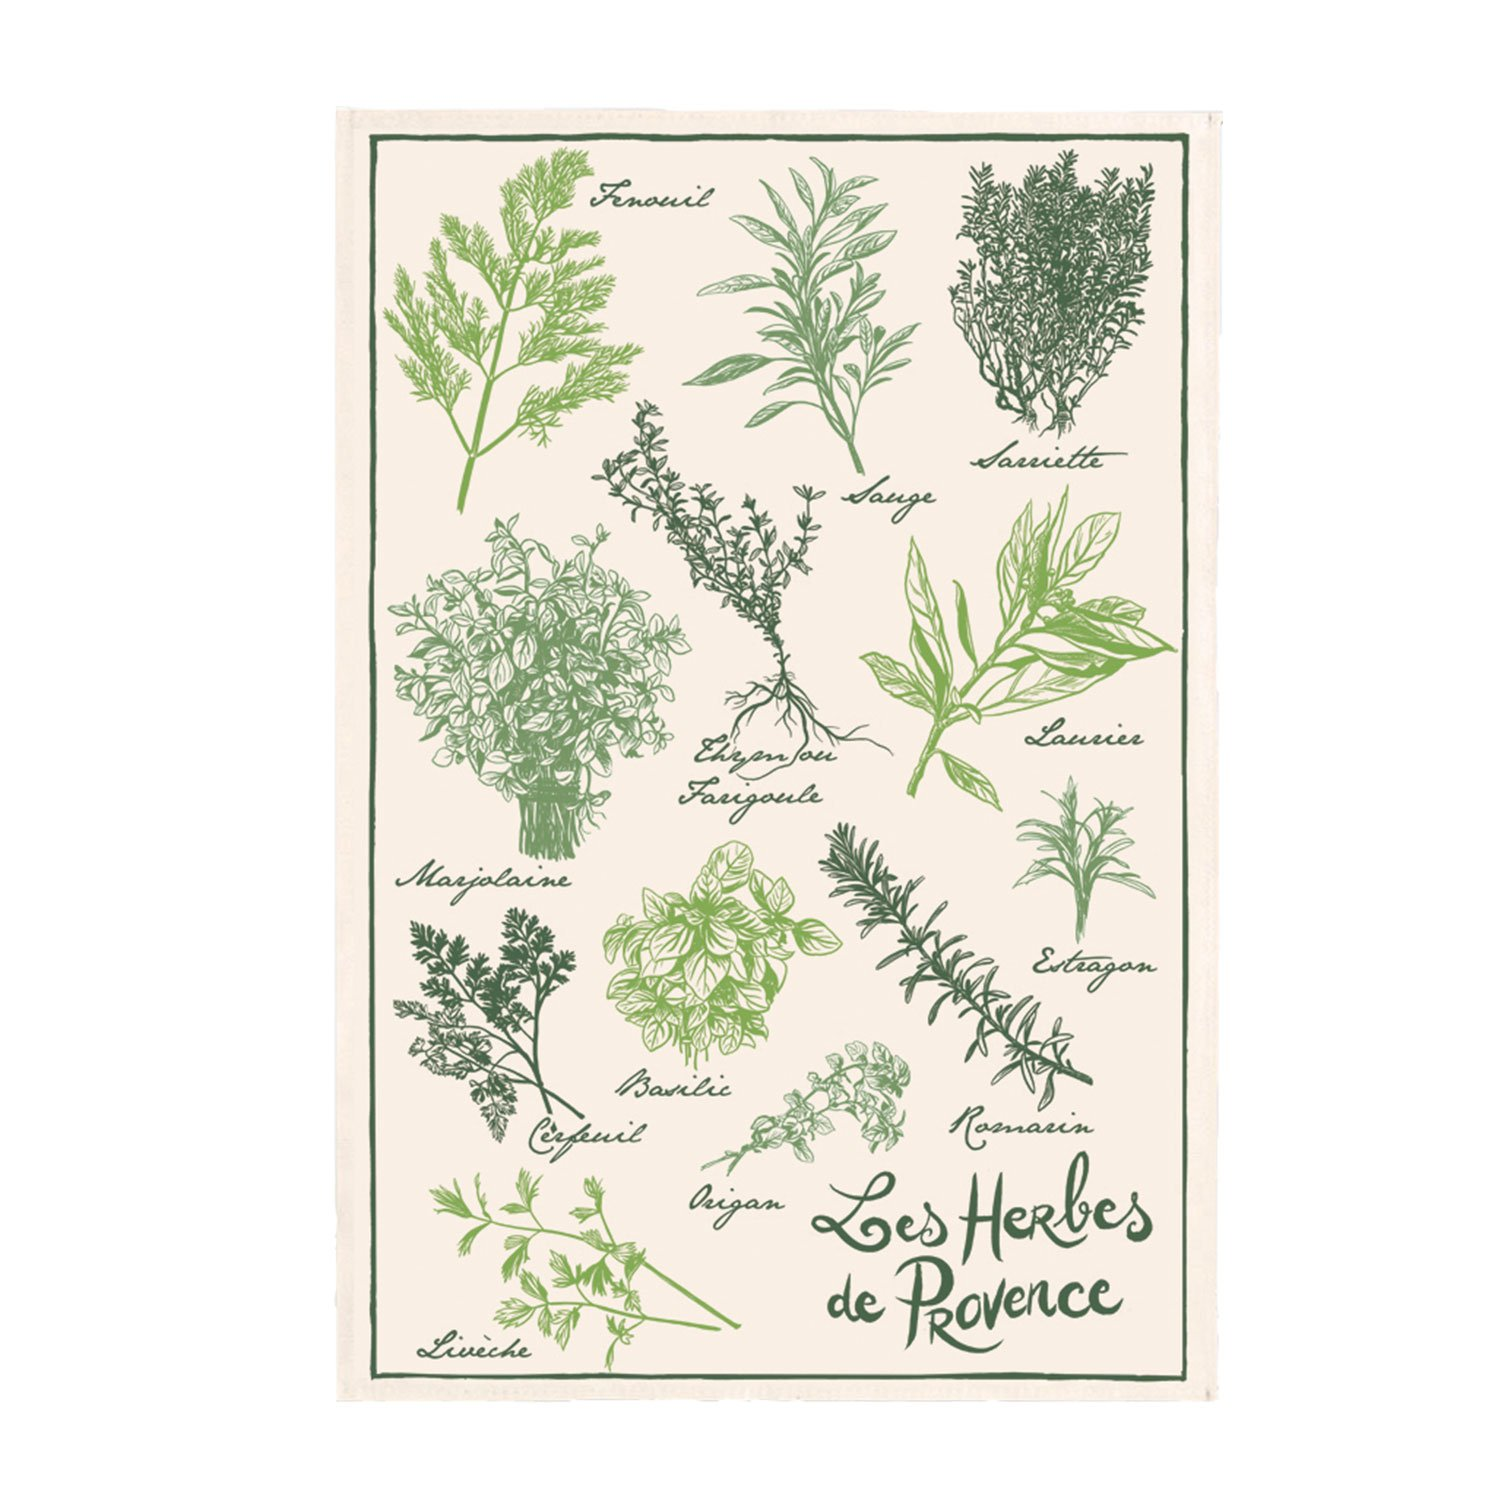 Torchons and Bouchons Herb Tea Towel from Provence - Made in France.